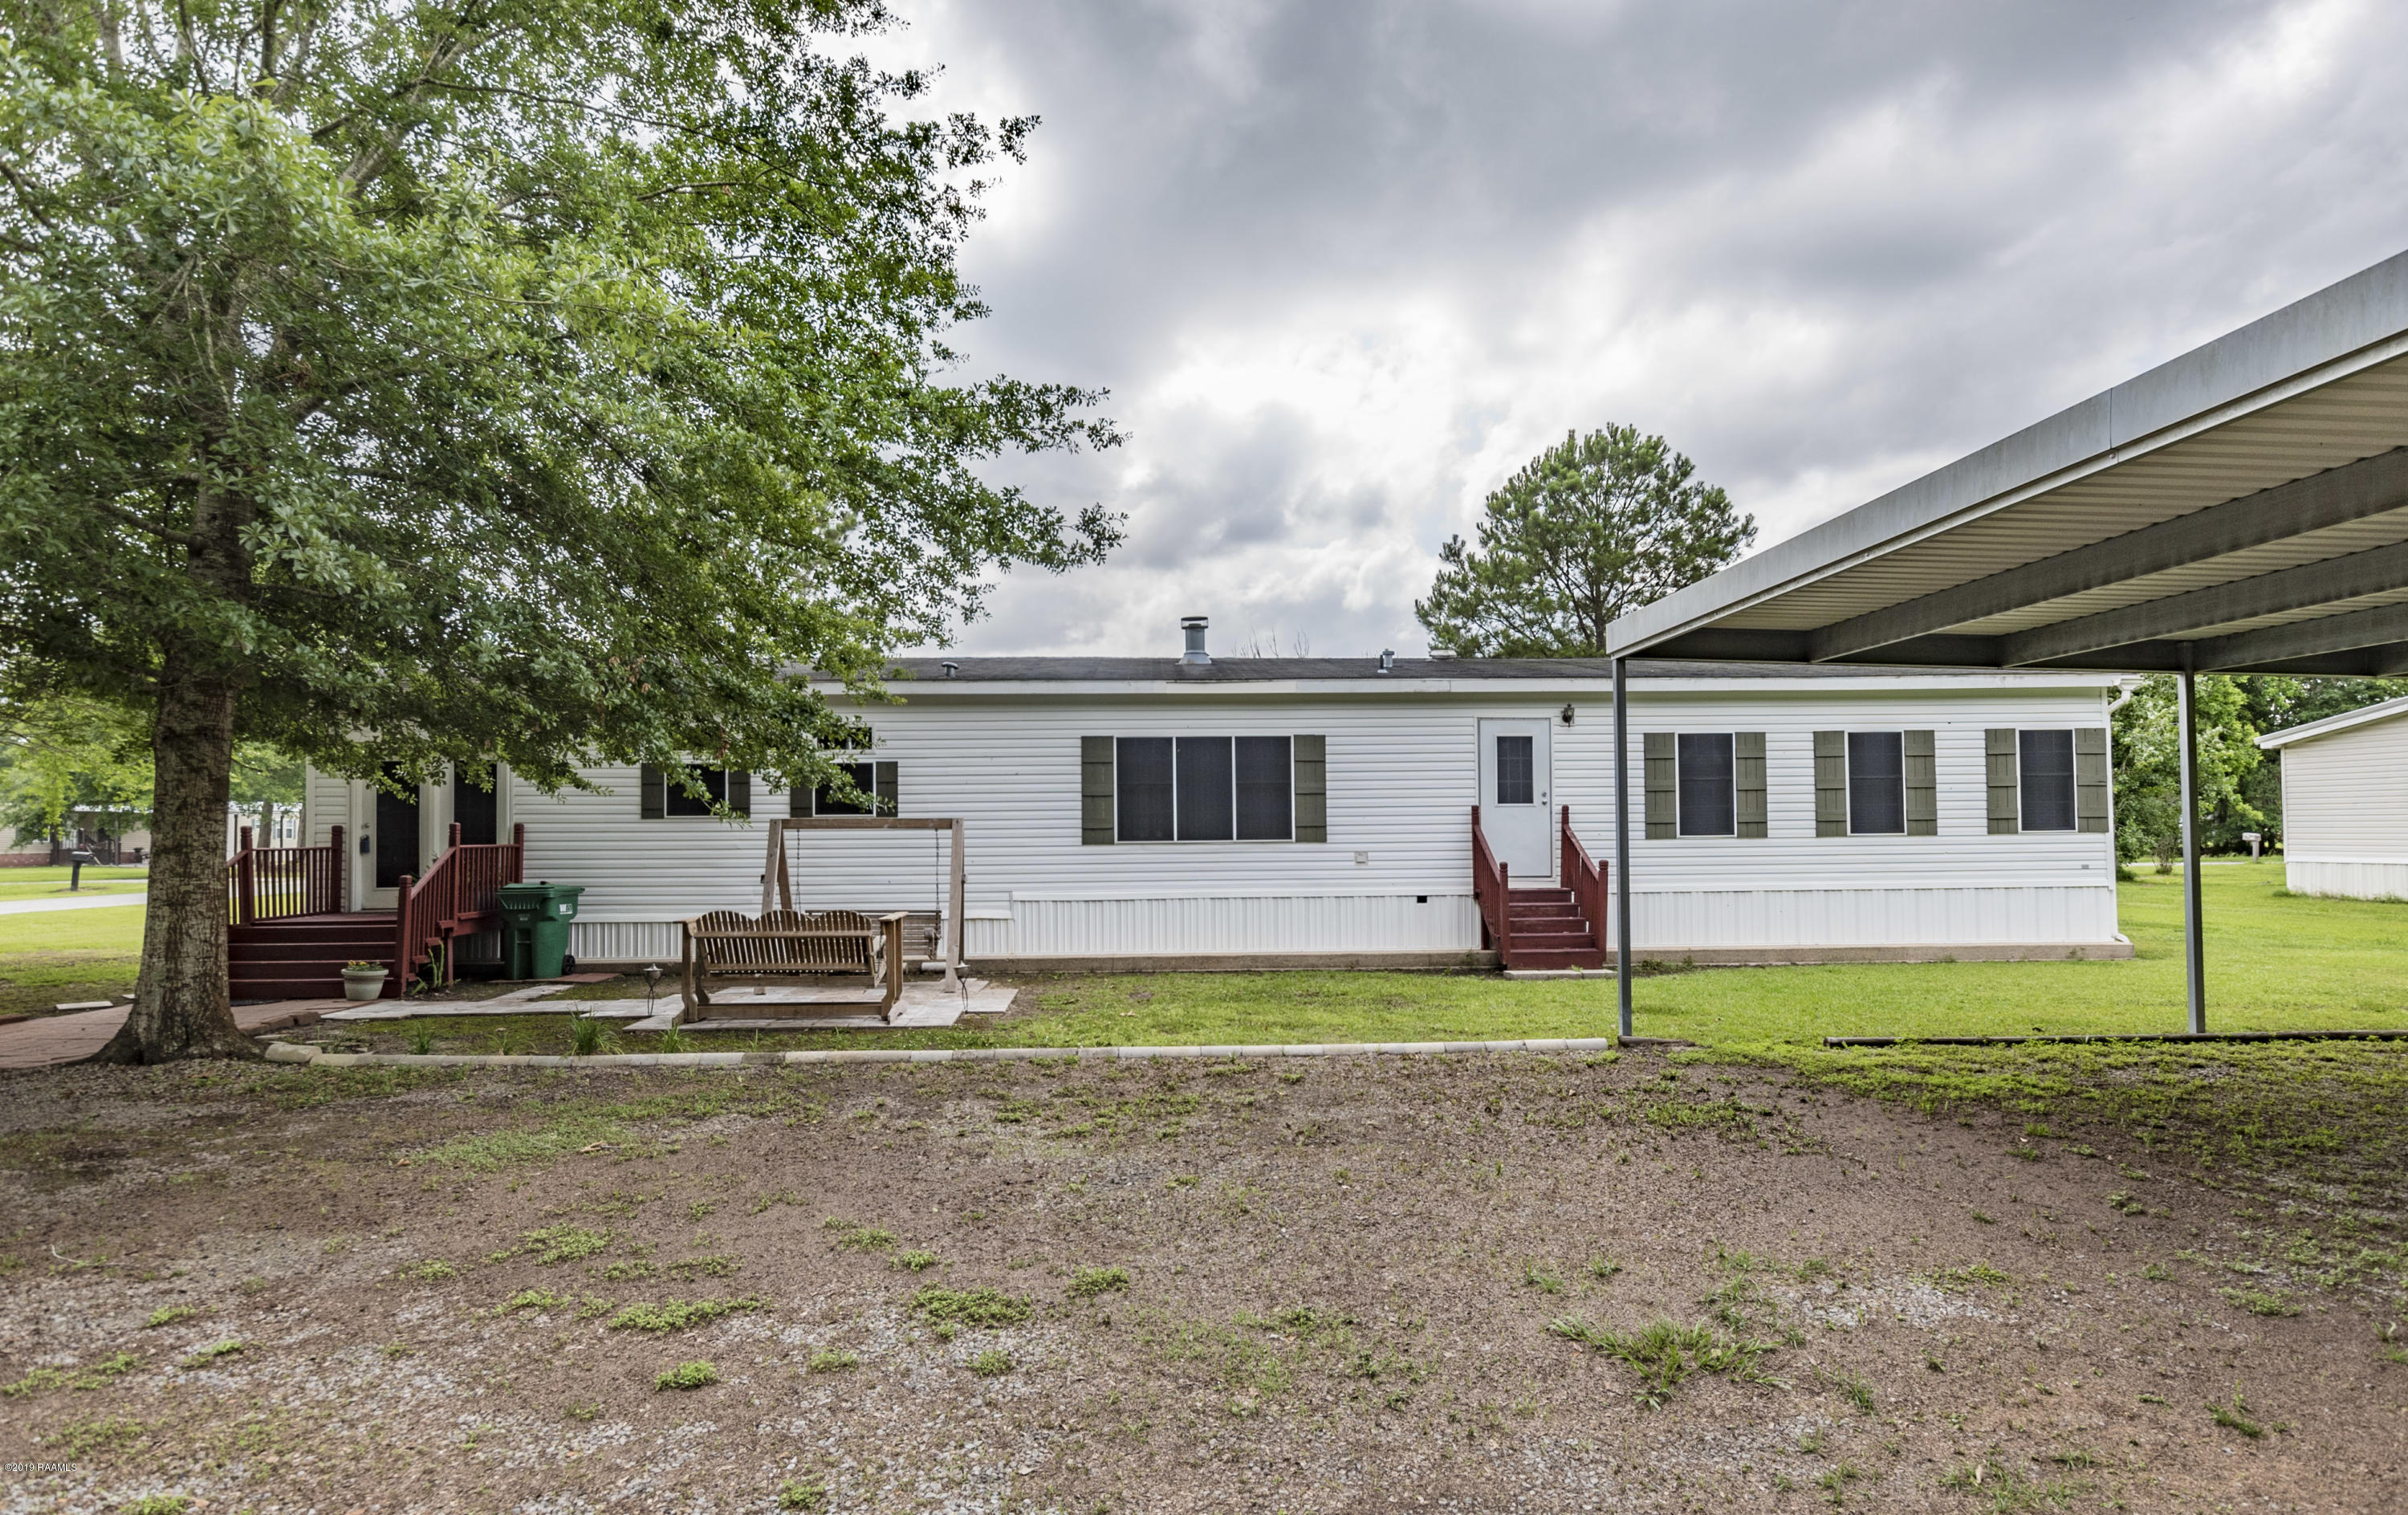 1037 Vivian Street, Breaux Bridge, LA 70517 Photo #33